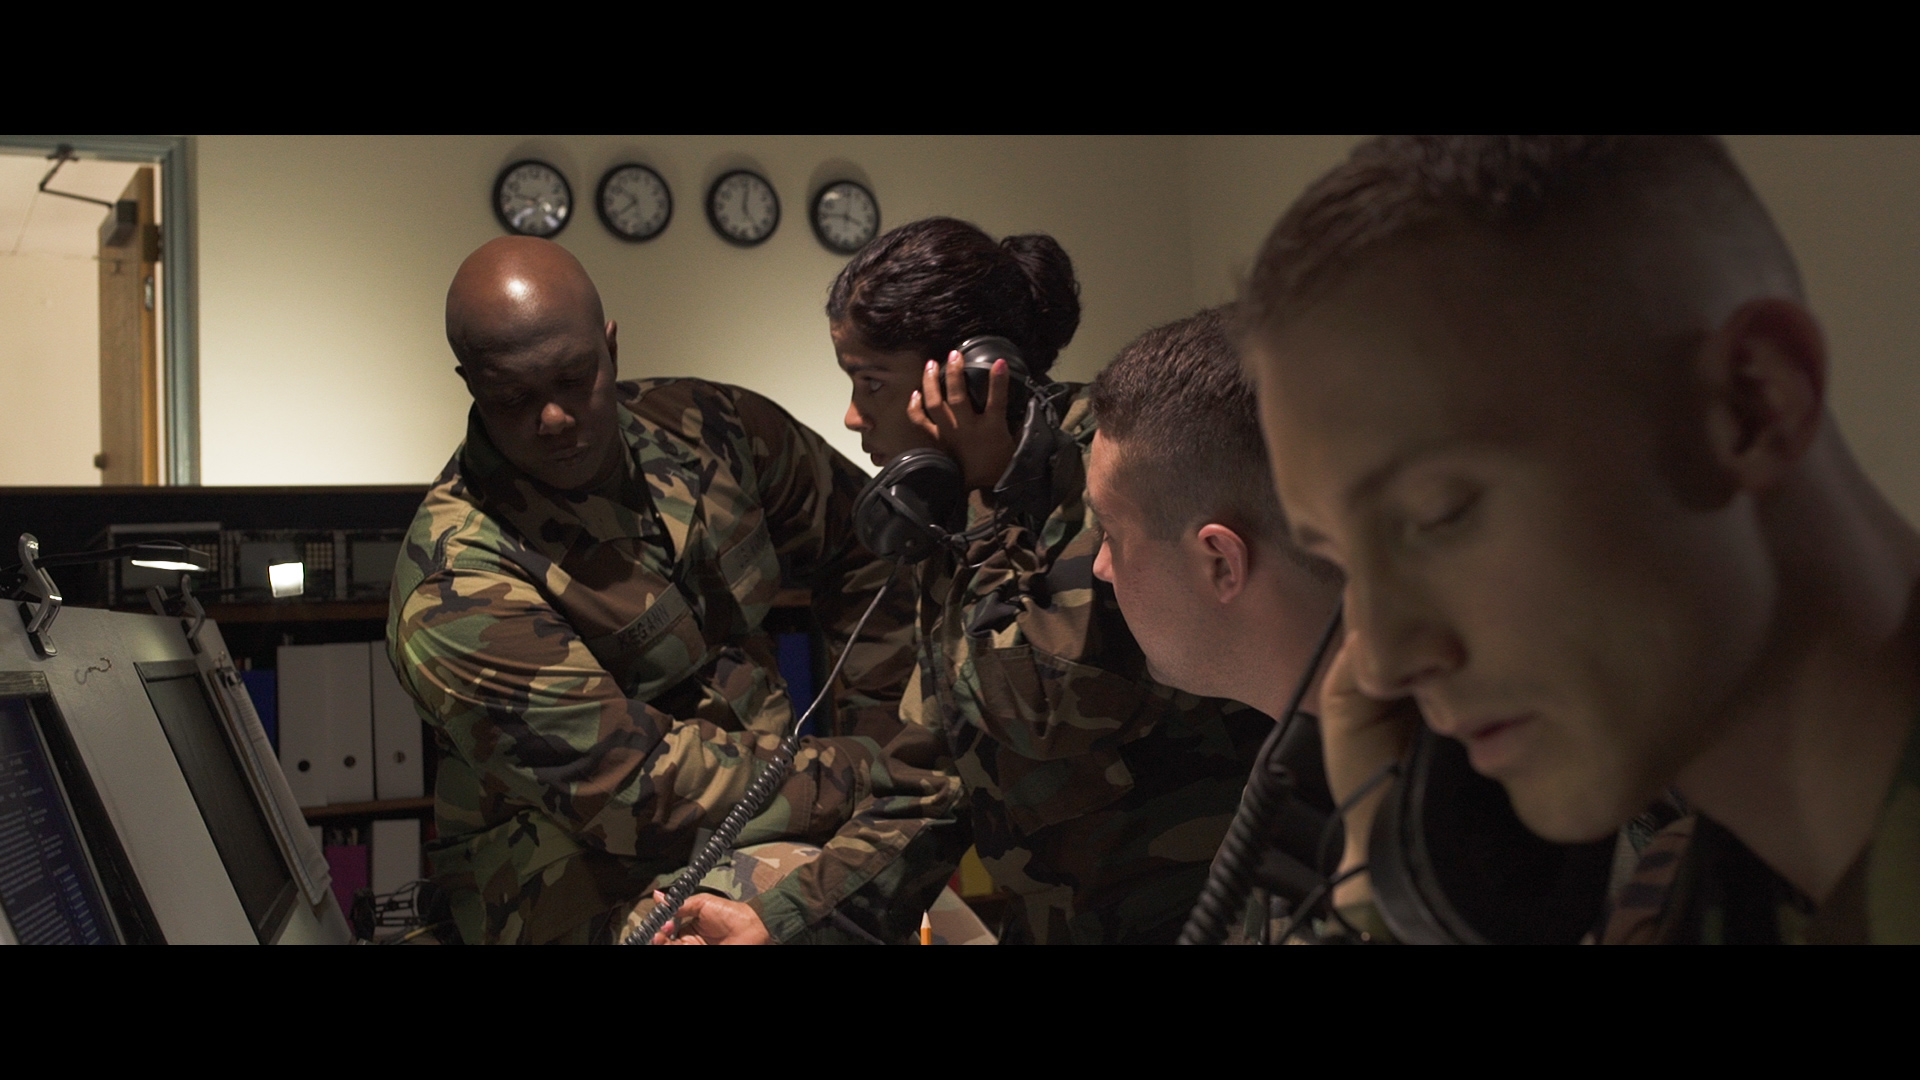 Marines on the Operations Floor in the short film Satellite Drop.